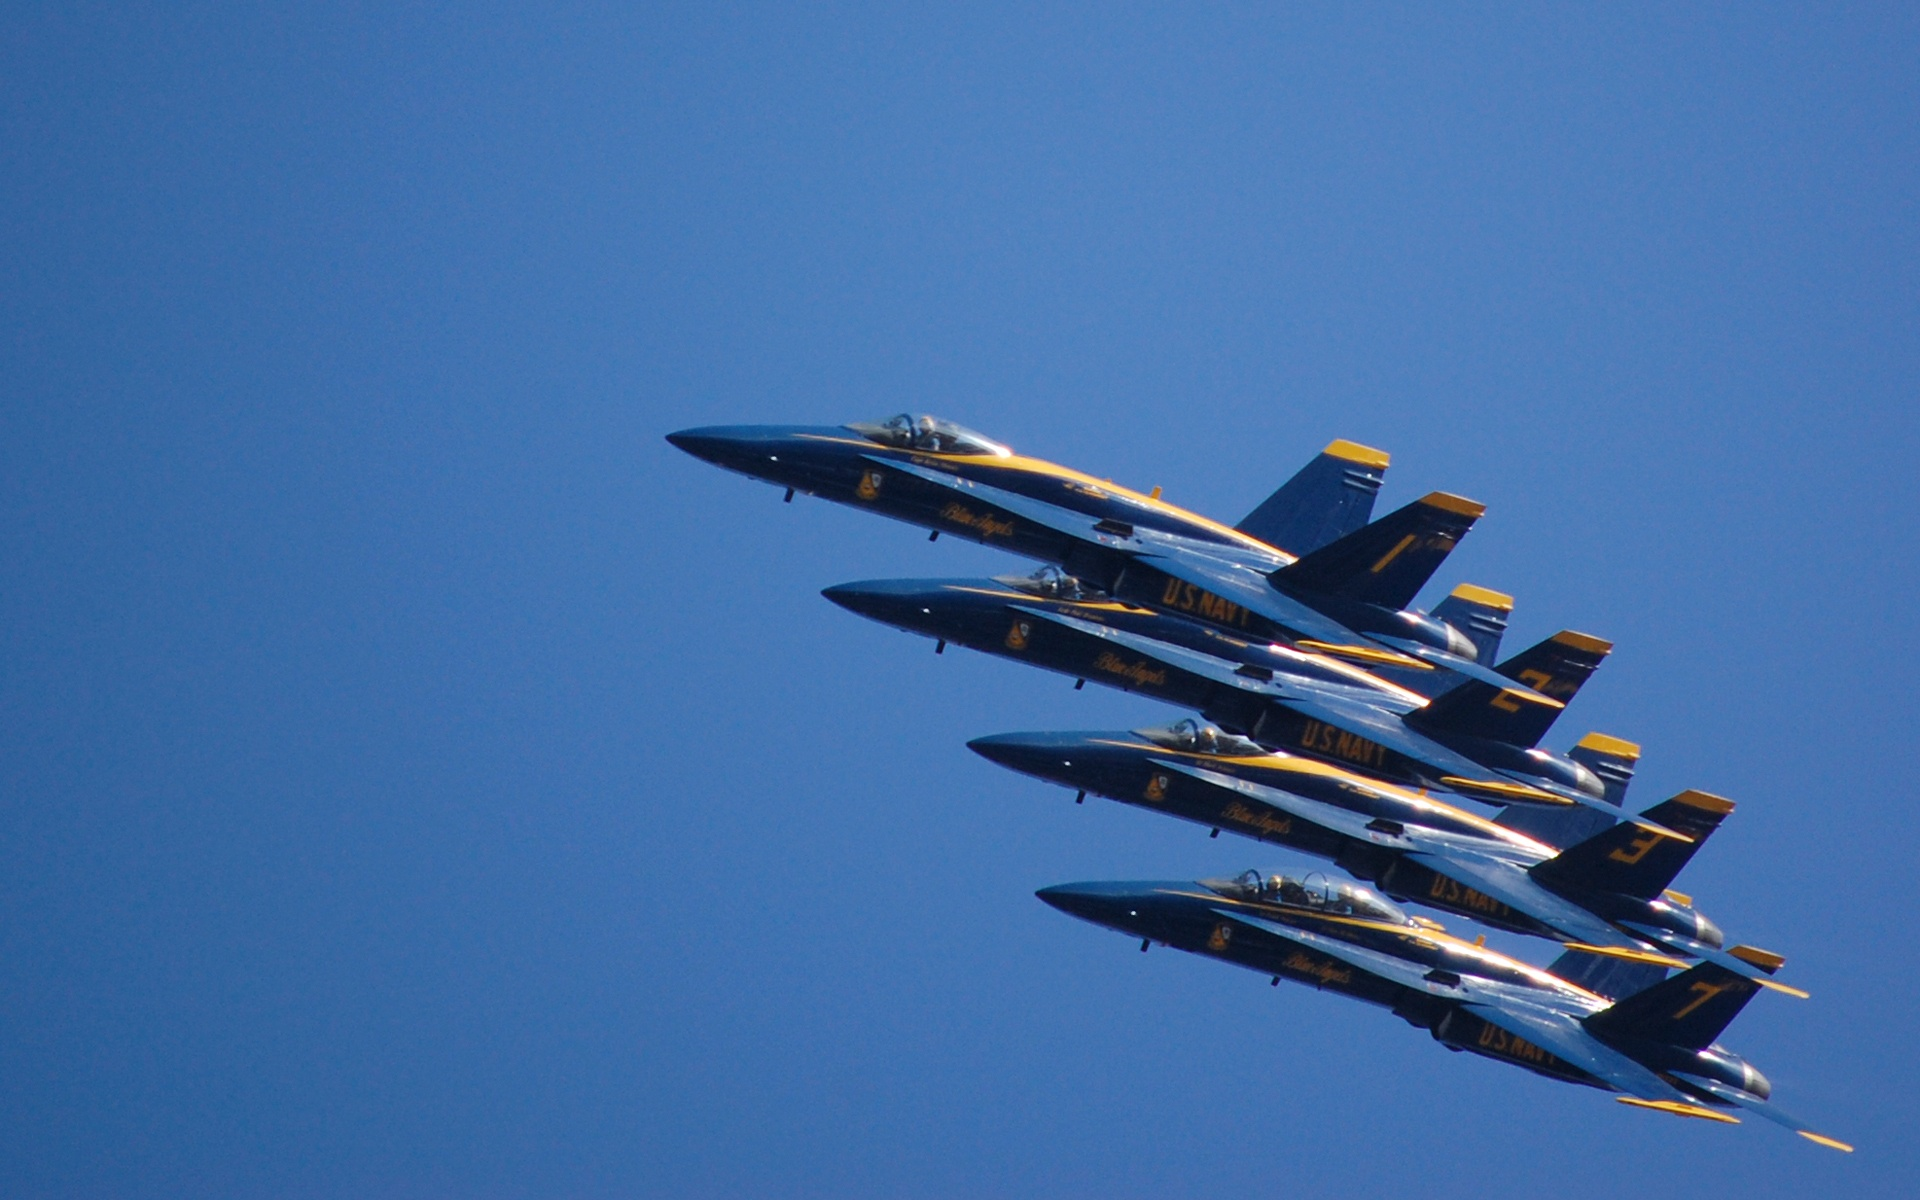 Blue Angels Wallpaper Blue angels 1920x1200